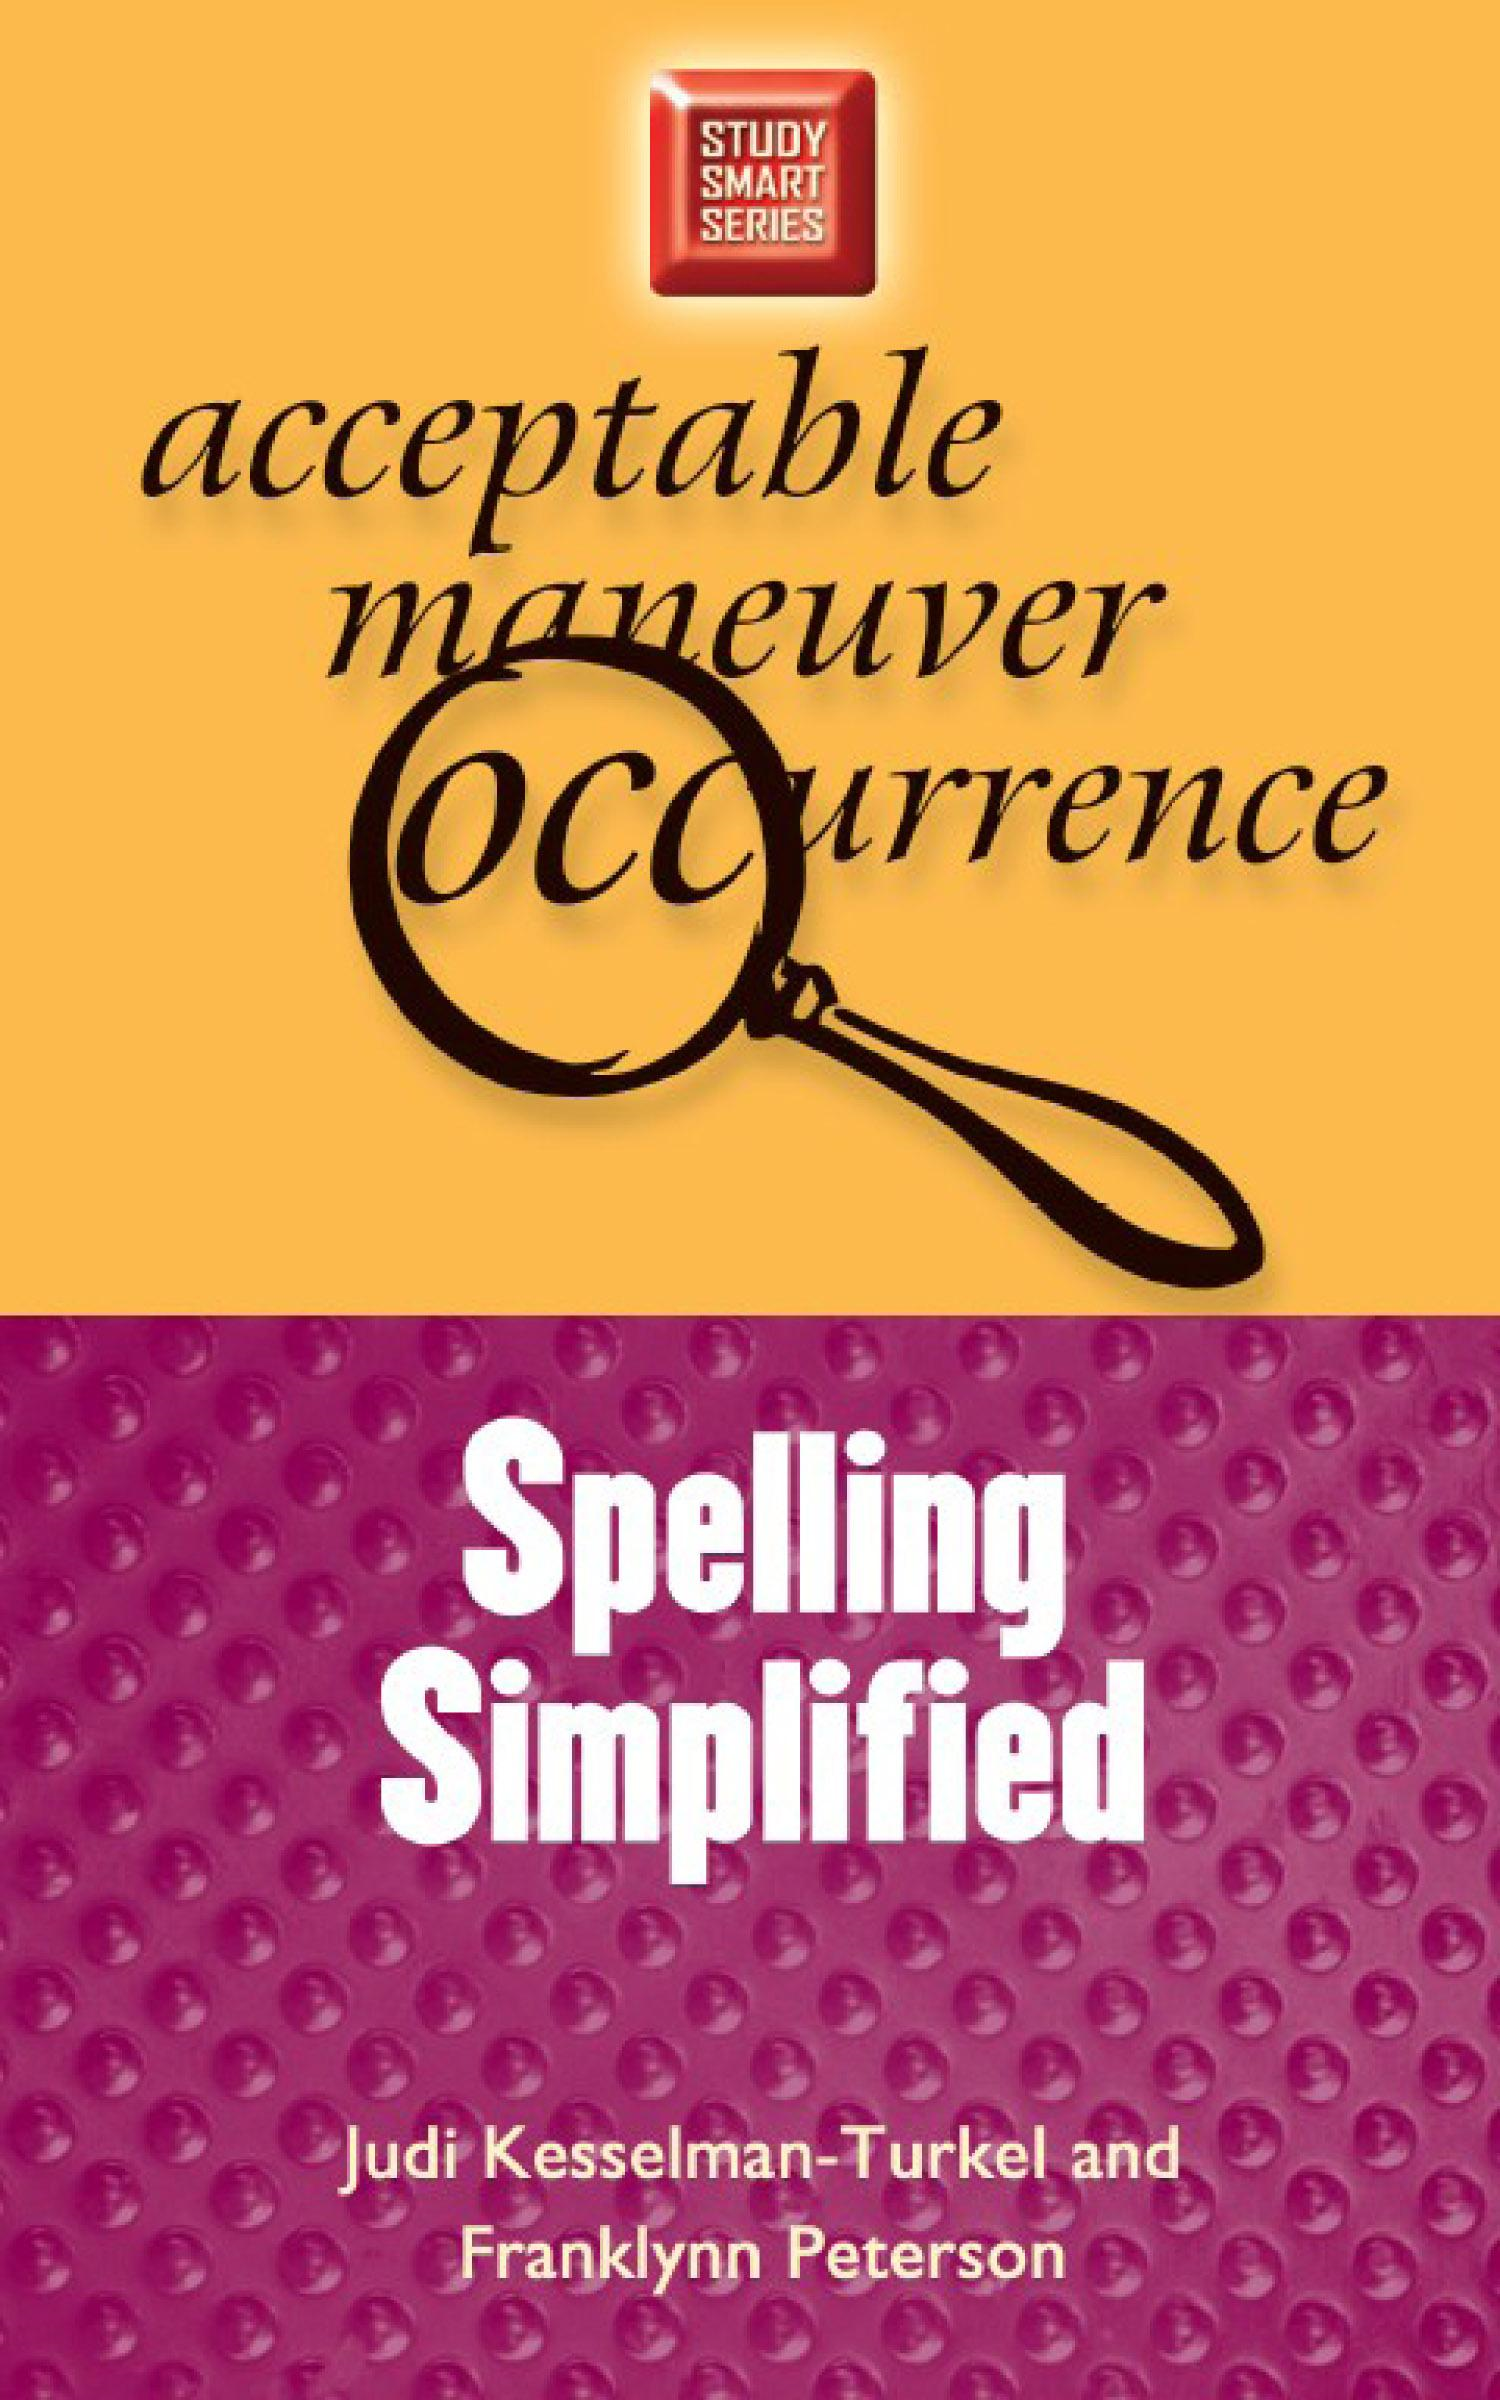 Spelling Simplified By: Judi Kesselman-Turkel